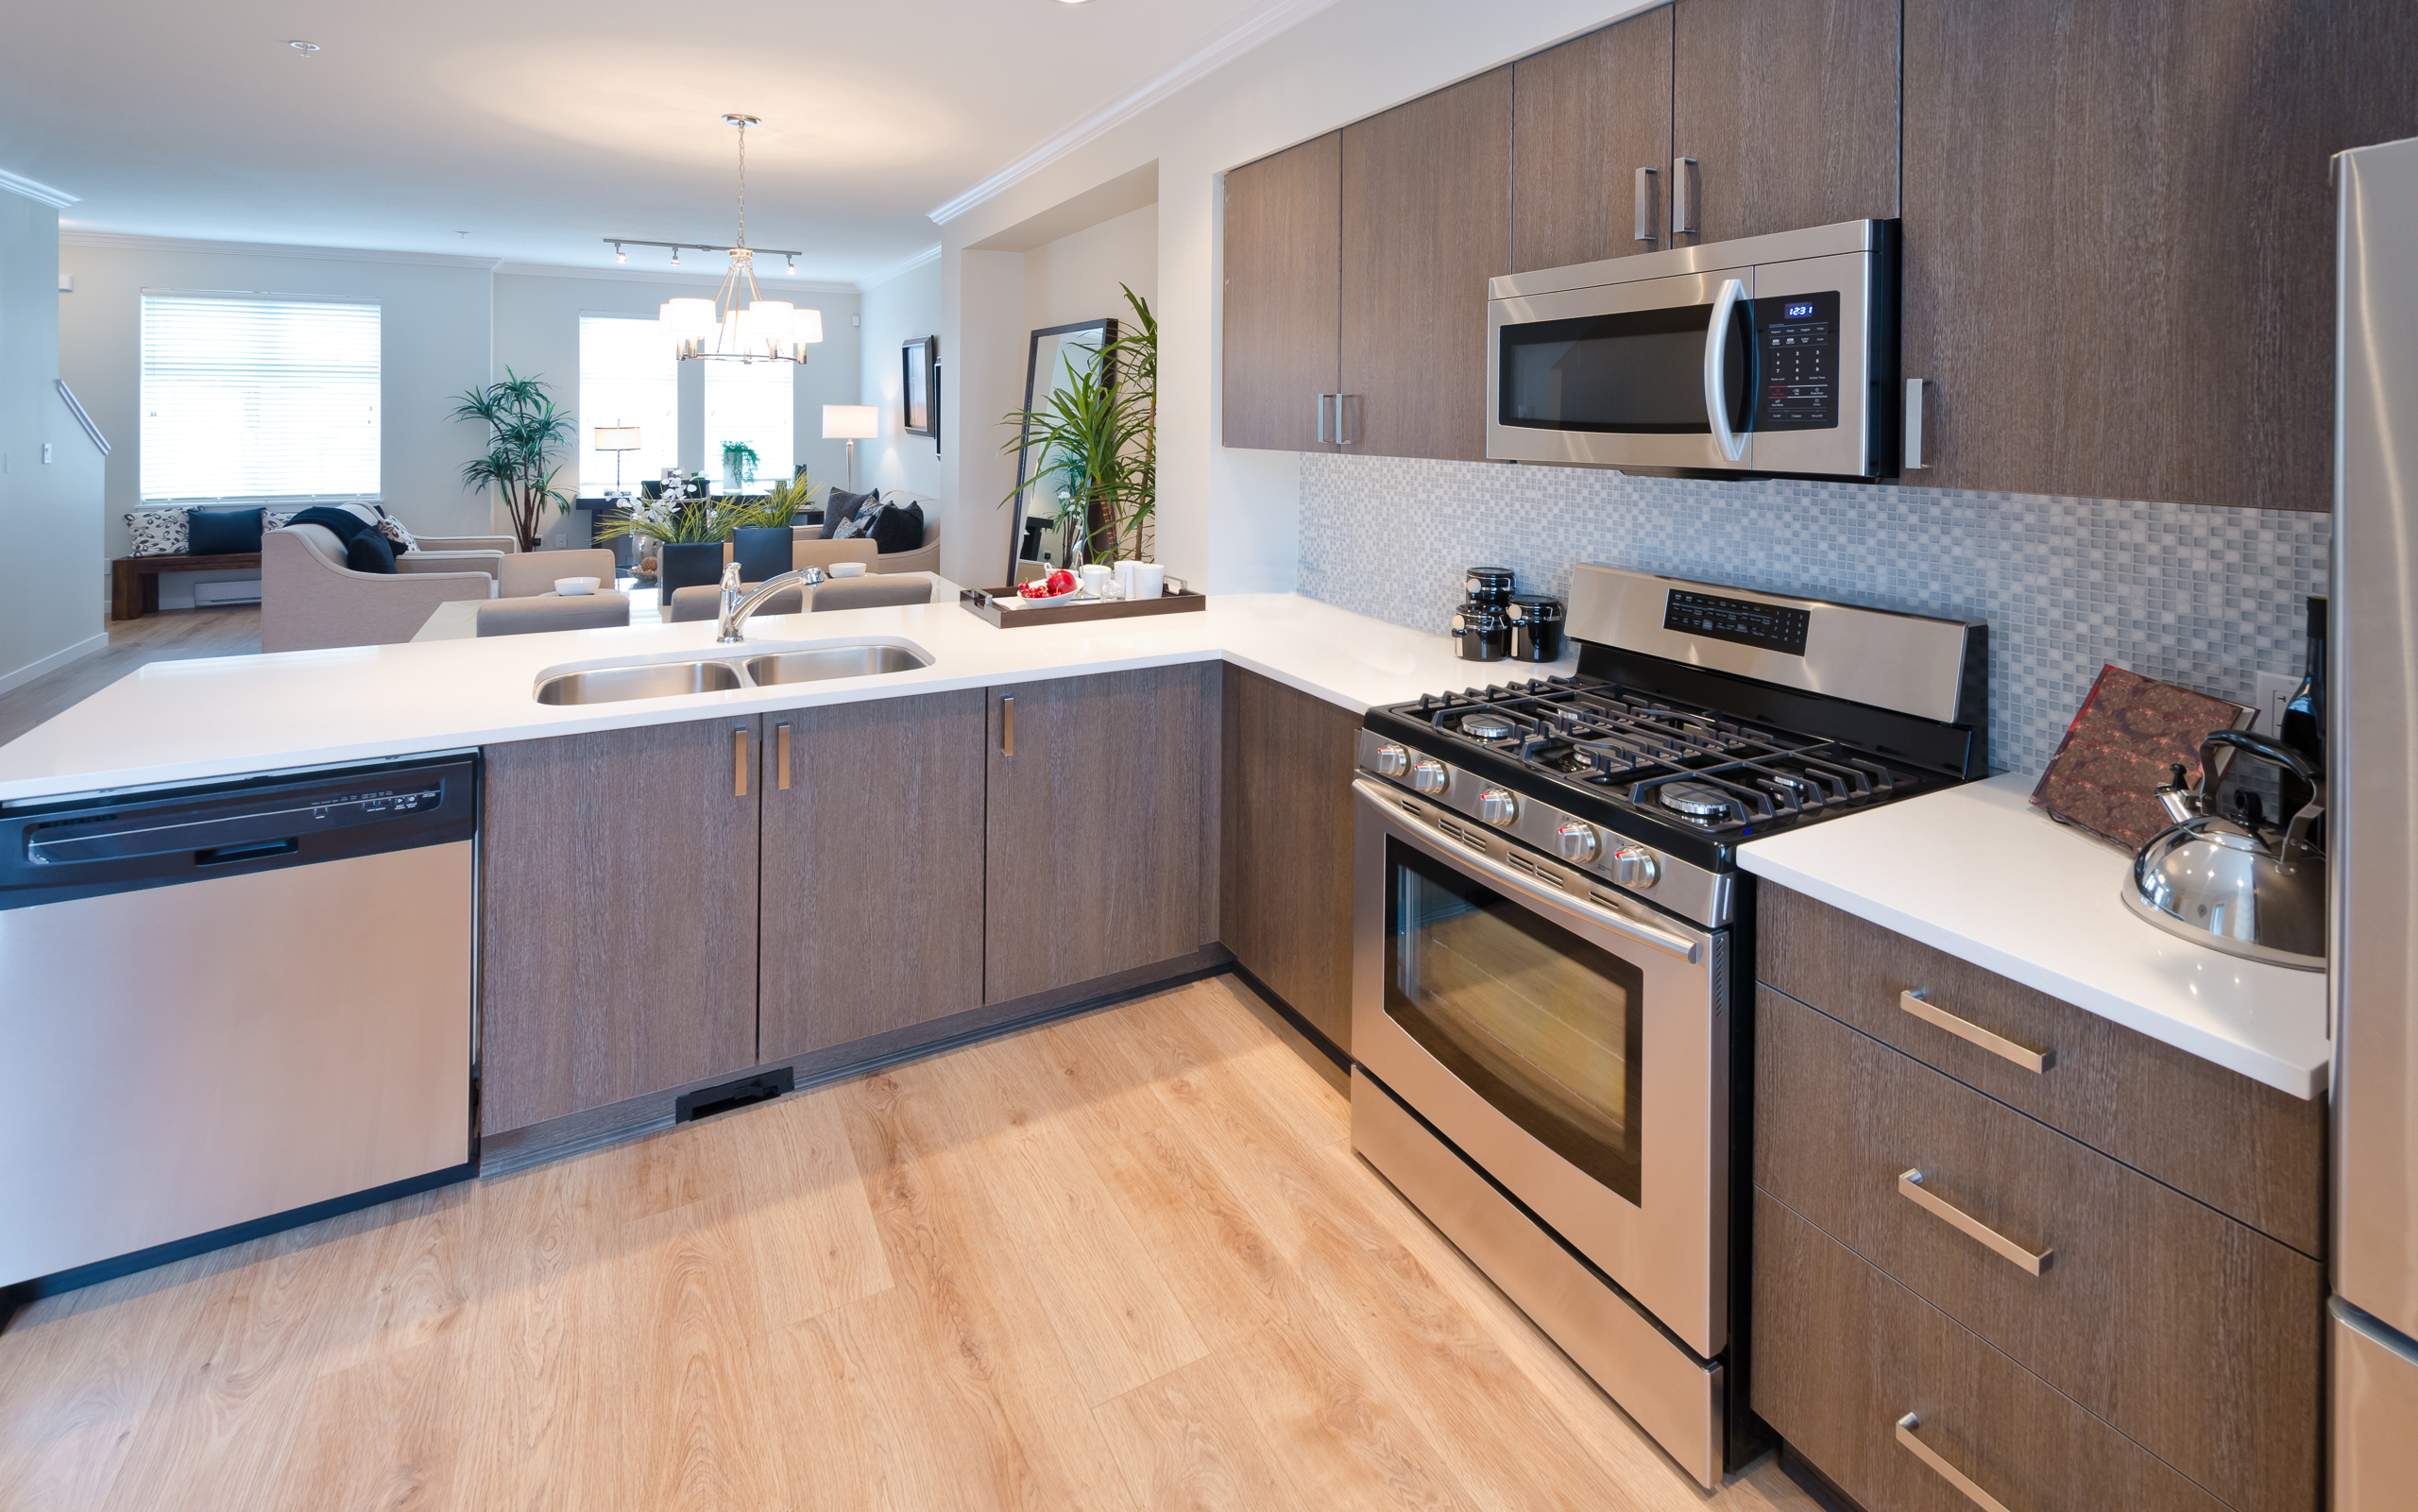 10 Tips To Give Your Kitchen A Facelift For Under $3,500